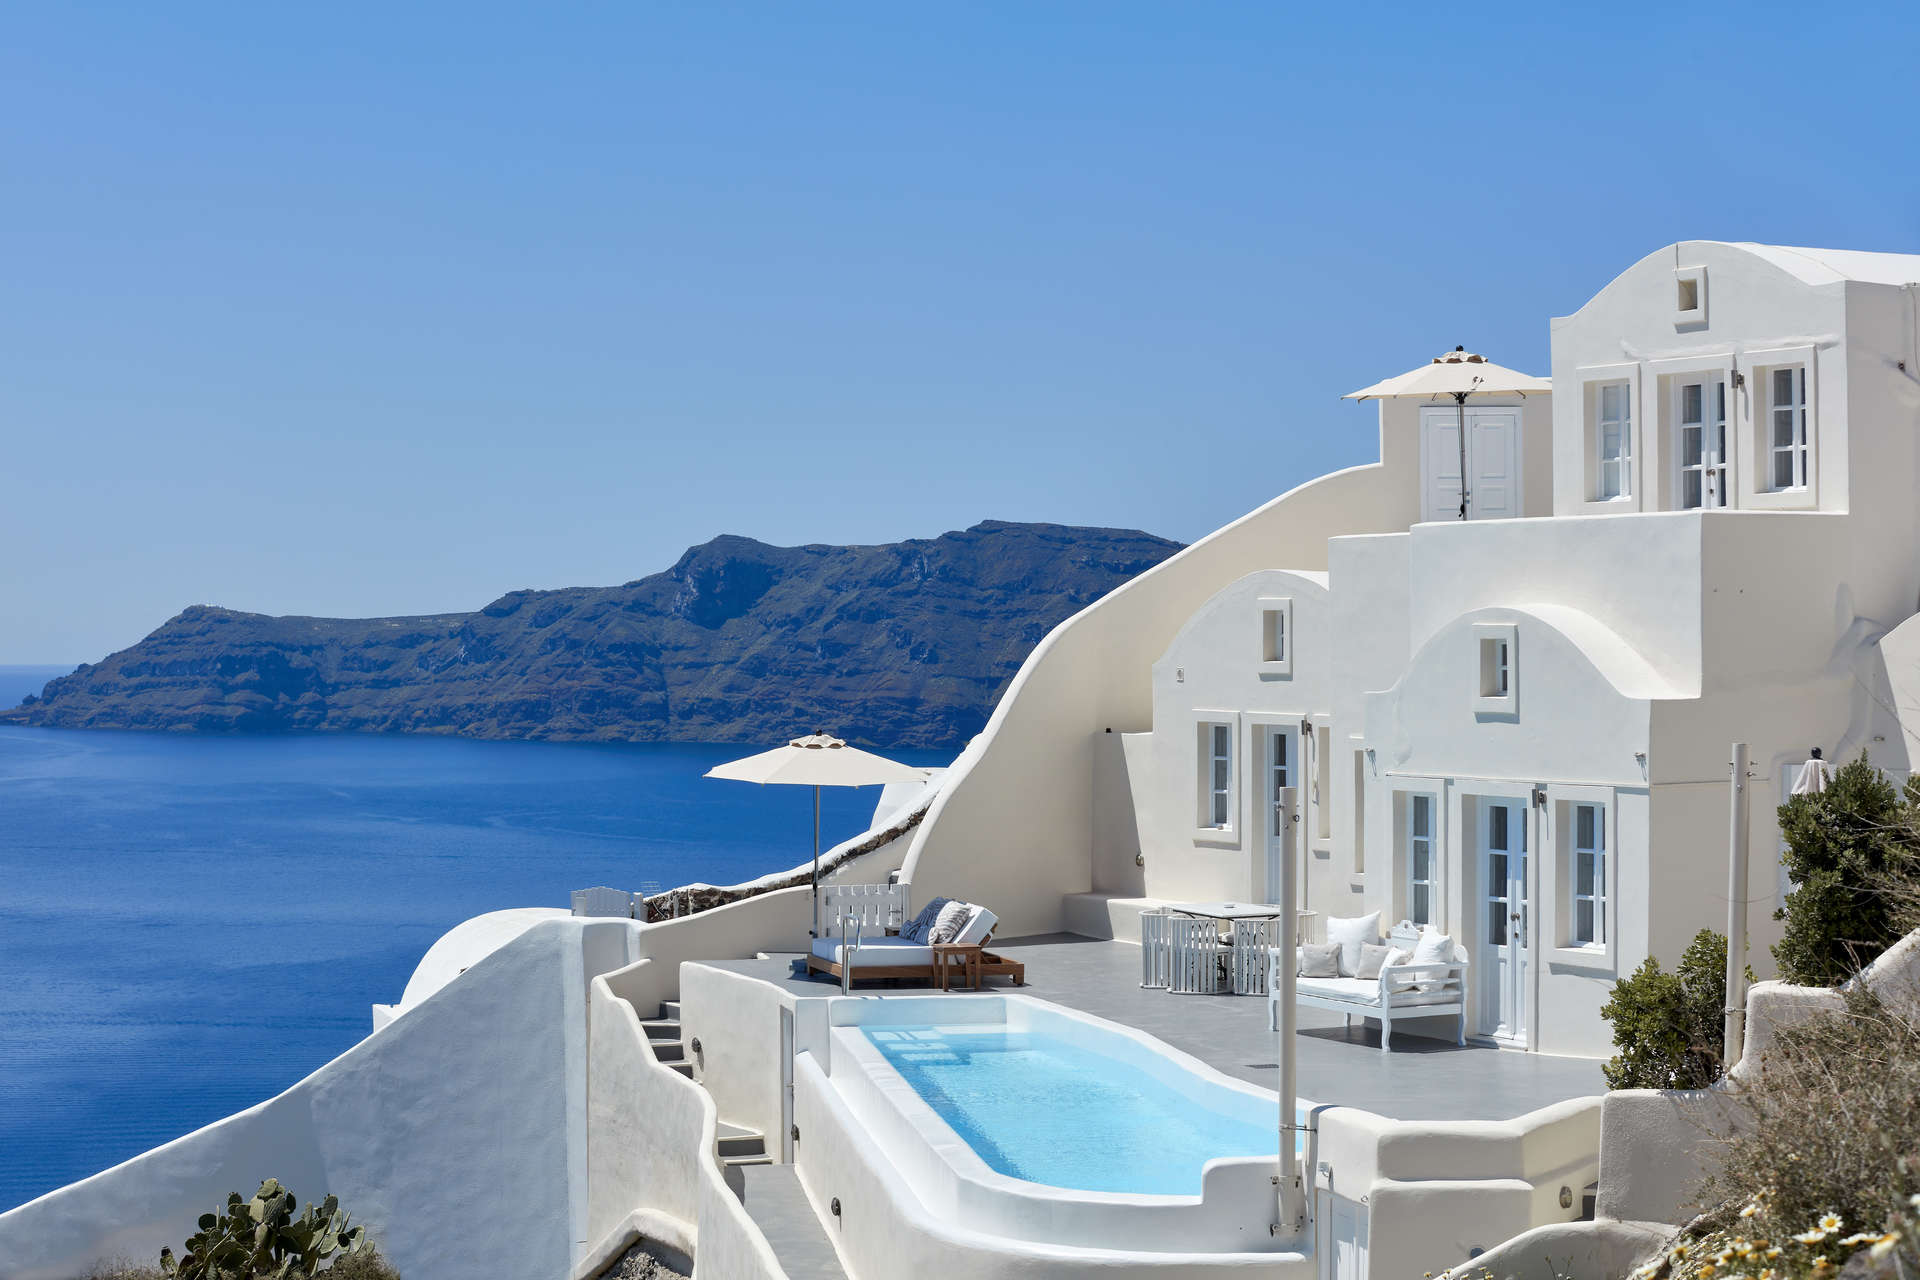 Luxury vacation rentals europe - Greece - Santorini - Canaves oia - Canaves Oia Santorini Villa - Image 1/10